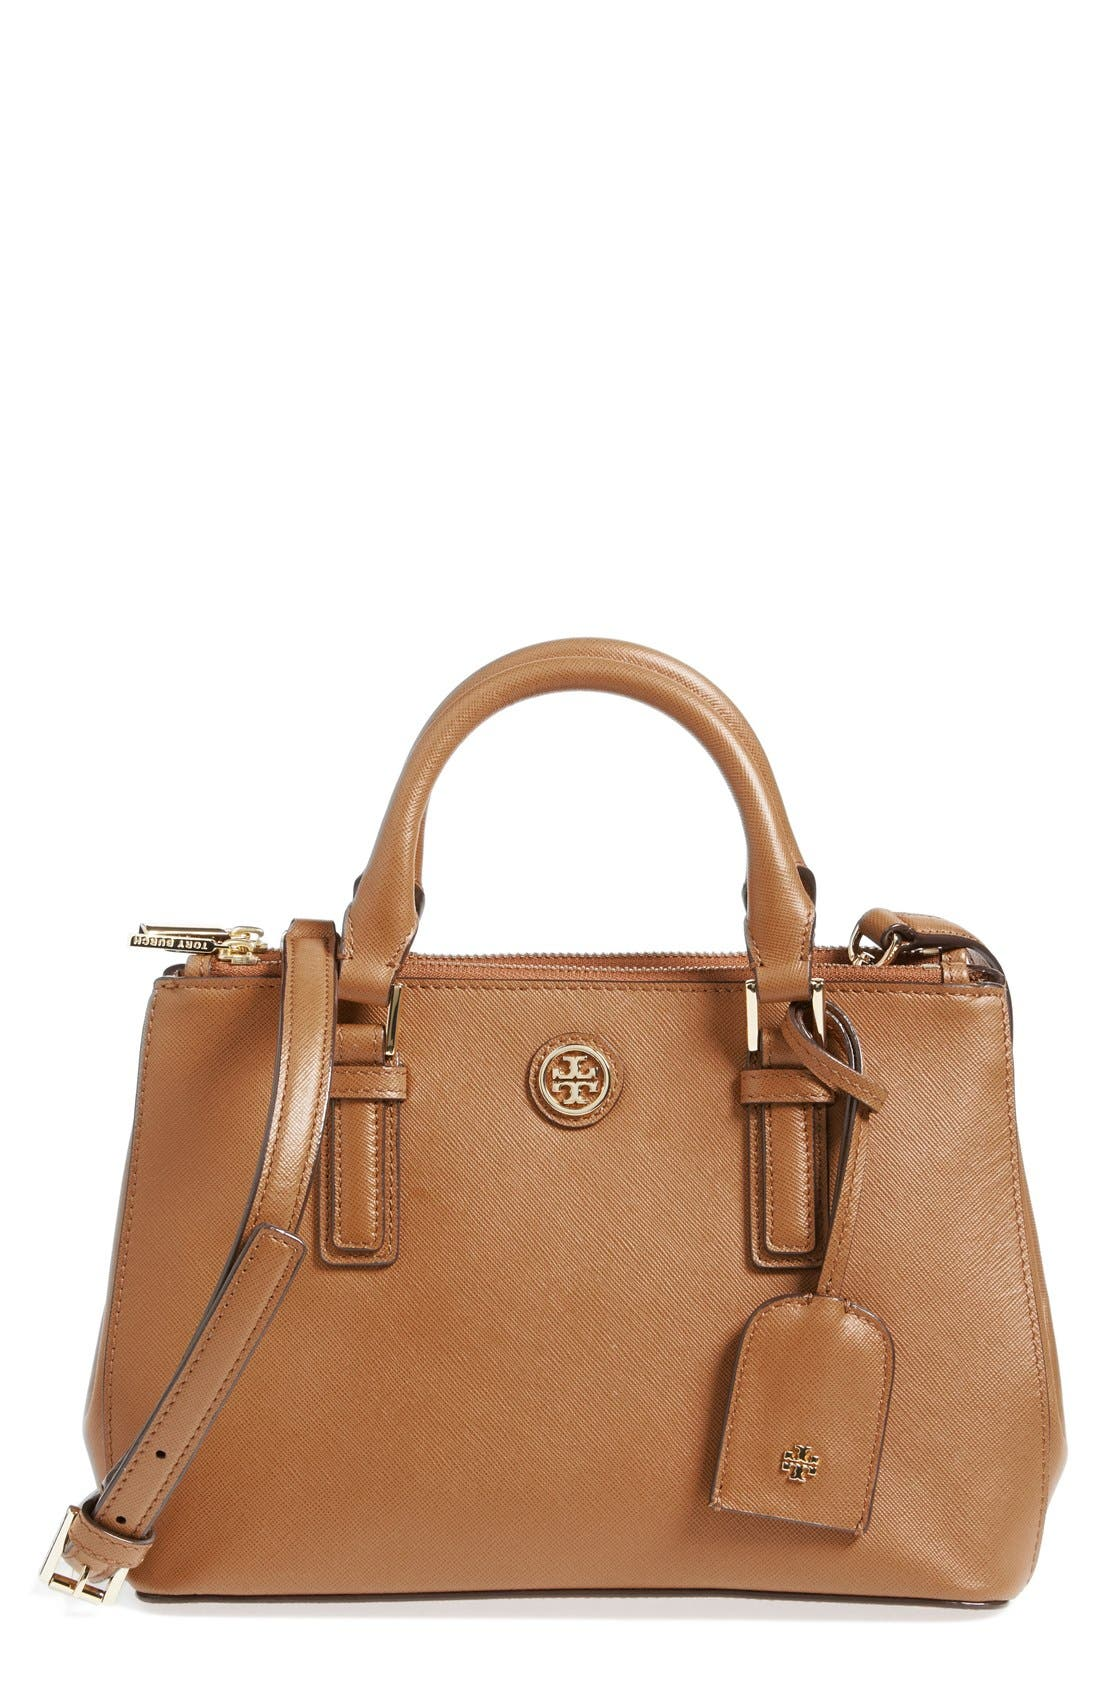 Alternate Image 1 Selected - Tory Burch 'Robinson - Micro' Double Zip Tote